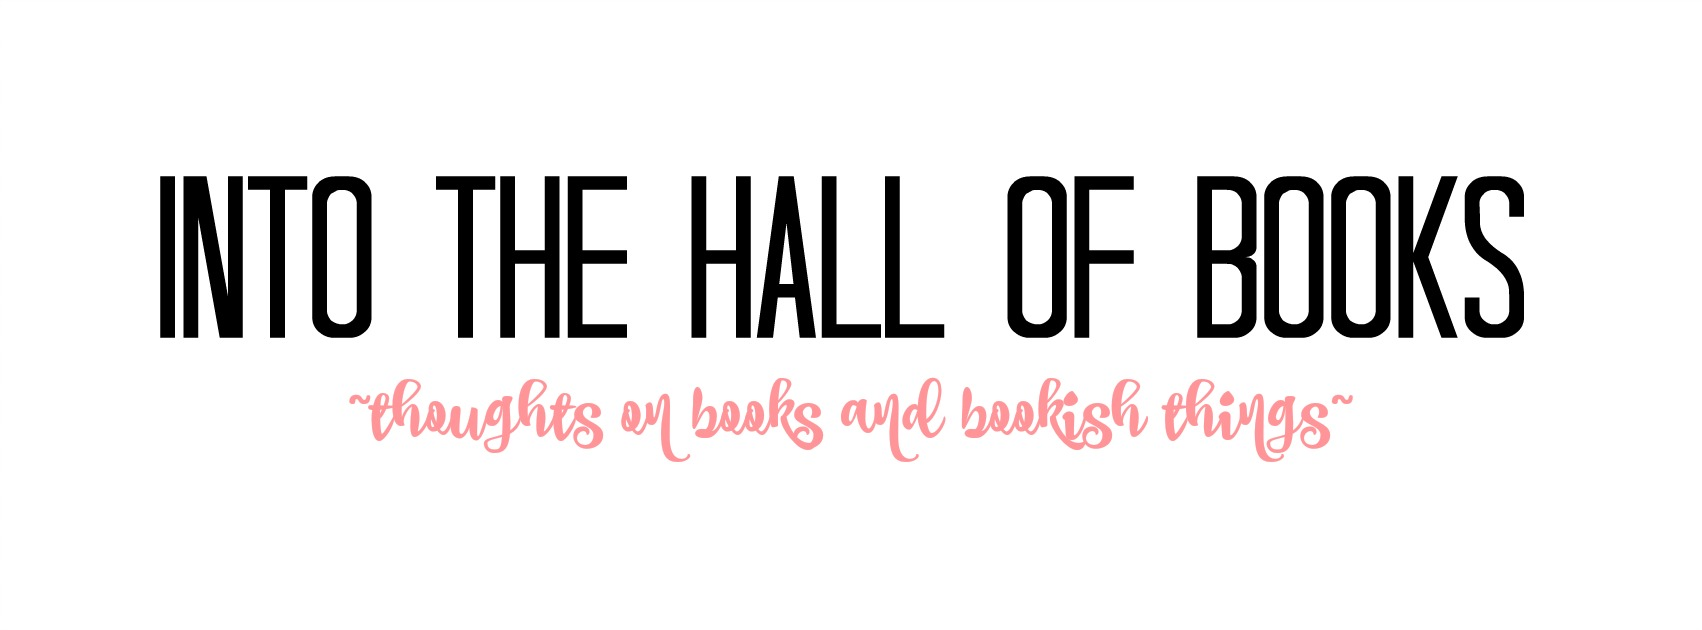 Into the Hall of Books